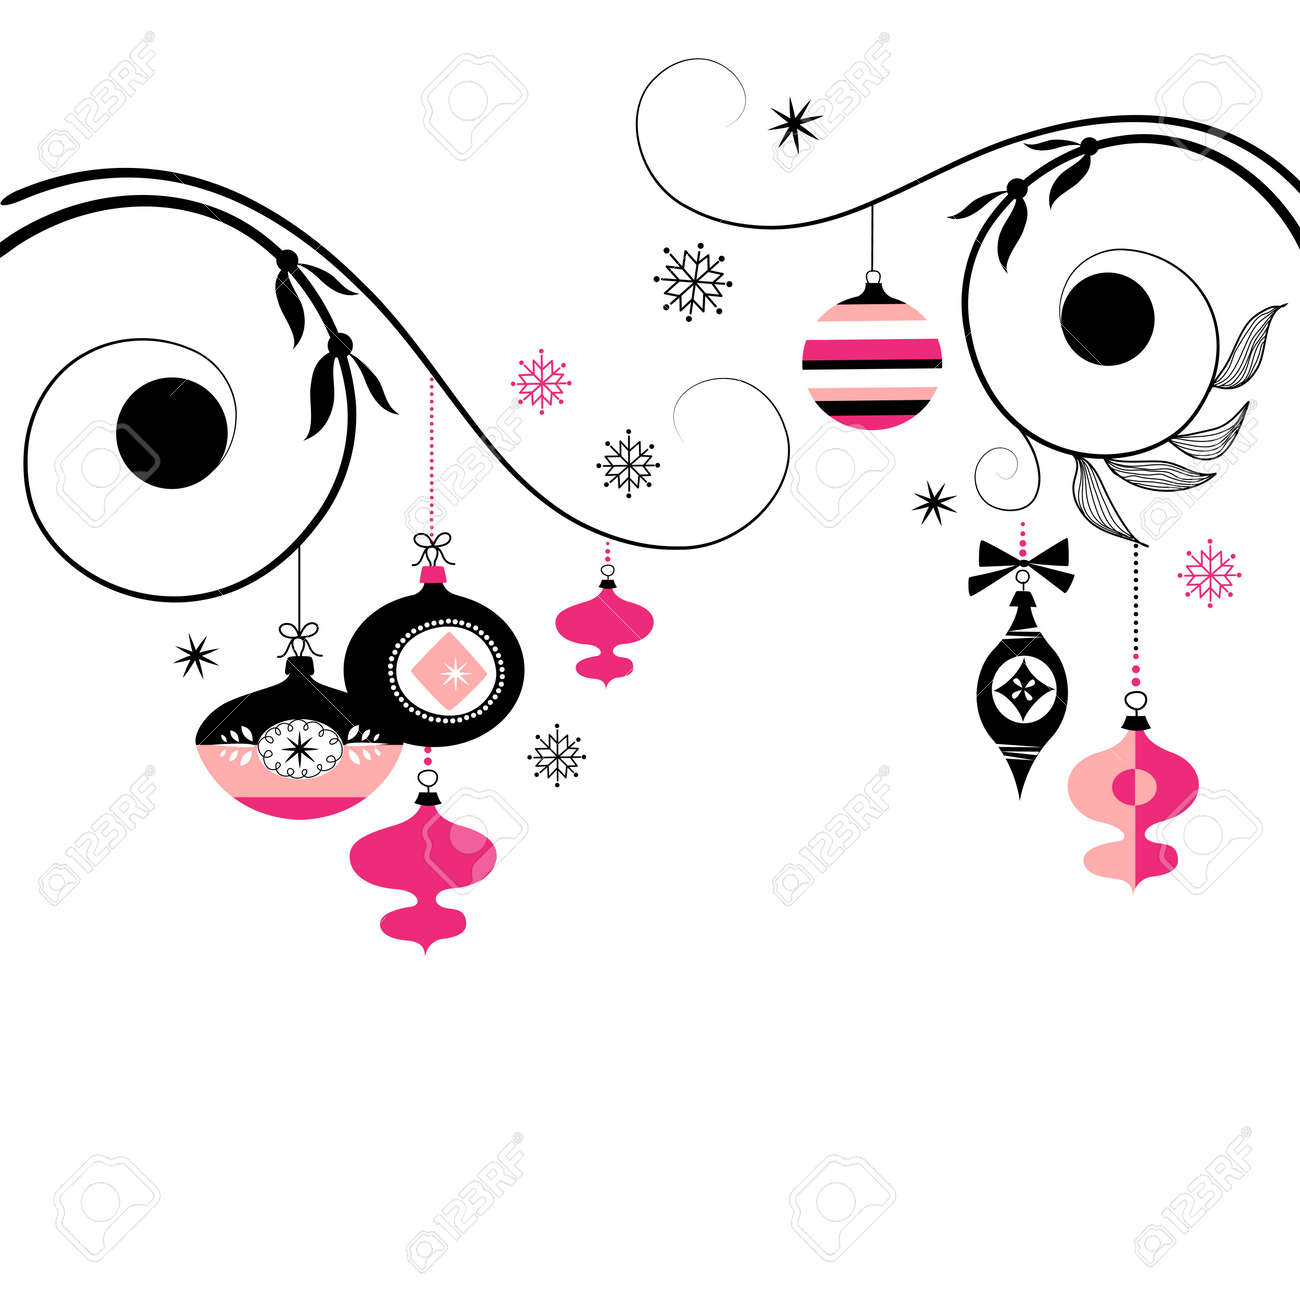 Christmas ornament black and white - Black And Pink Christmas Ornaments Stock Vector 11150329